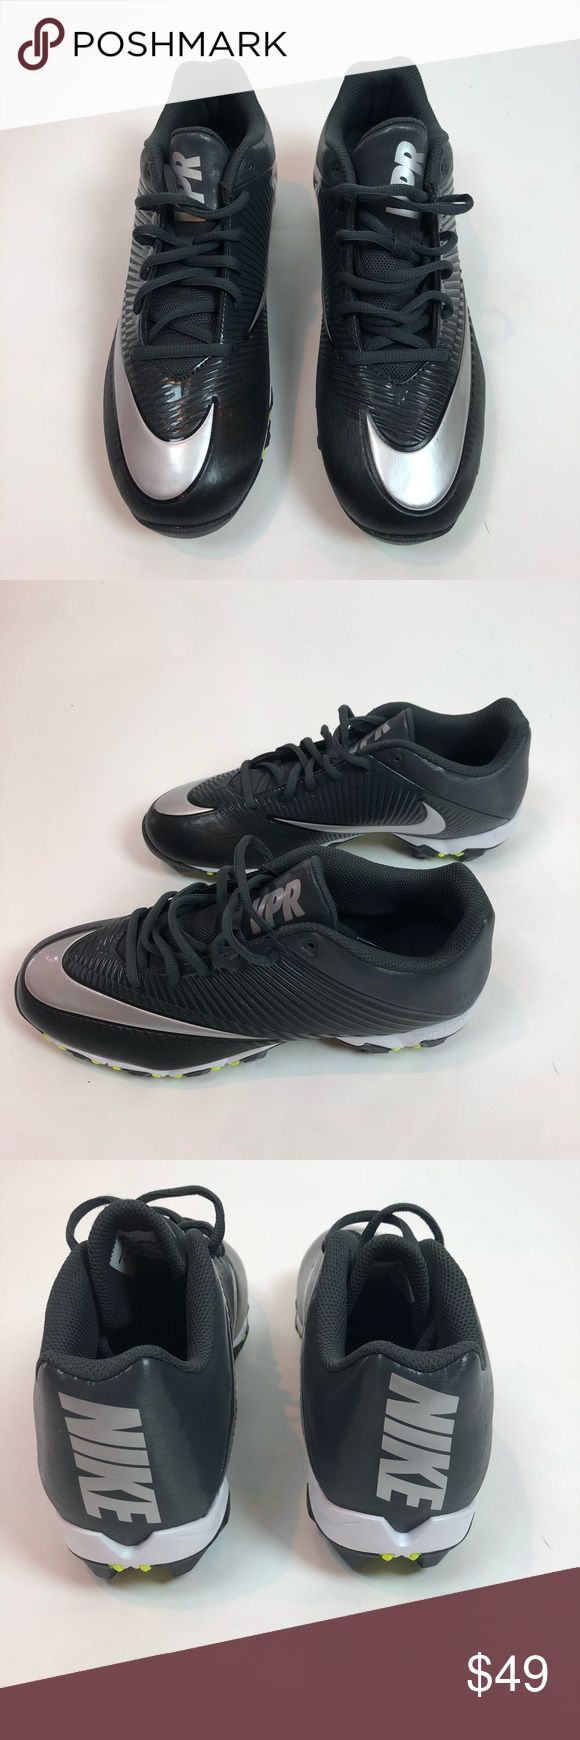 Nike Mens Football Cleats Vapor Shark 2 Size 9.5 Brand new without a box. Nike men's fastflex football cleats. Nike Shoes Athletic Shoes